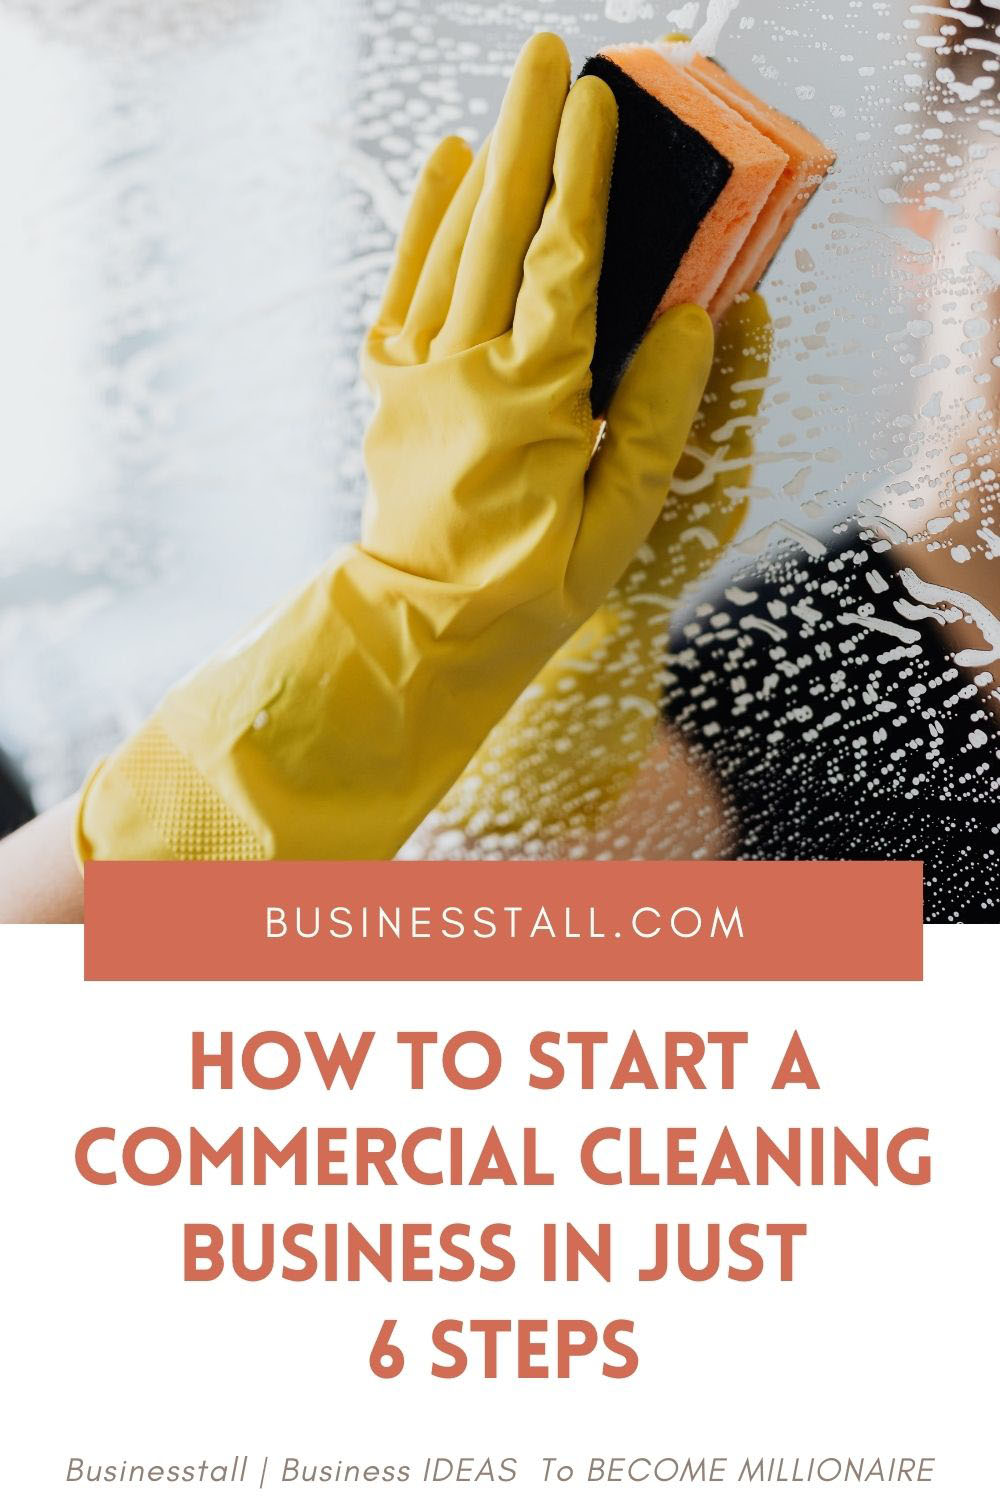 How to start a Commercial Cleaning Business in 6 Steps